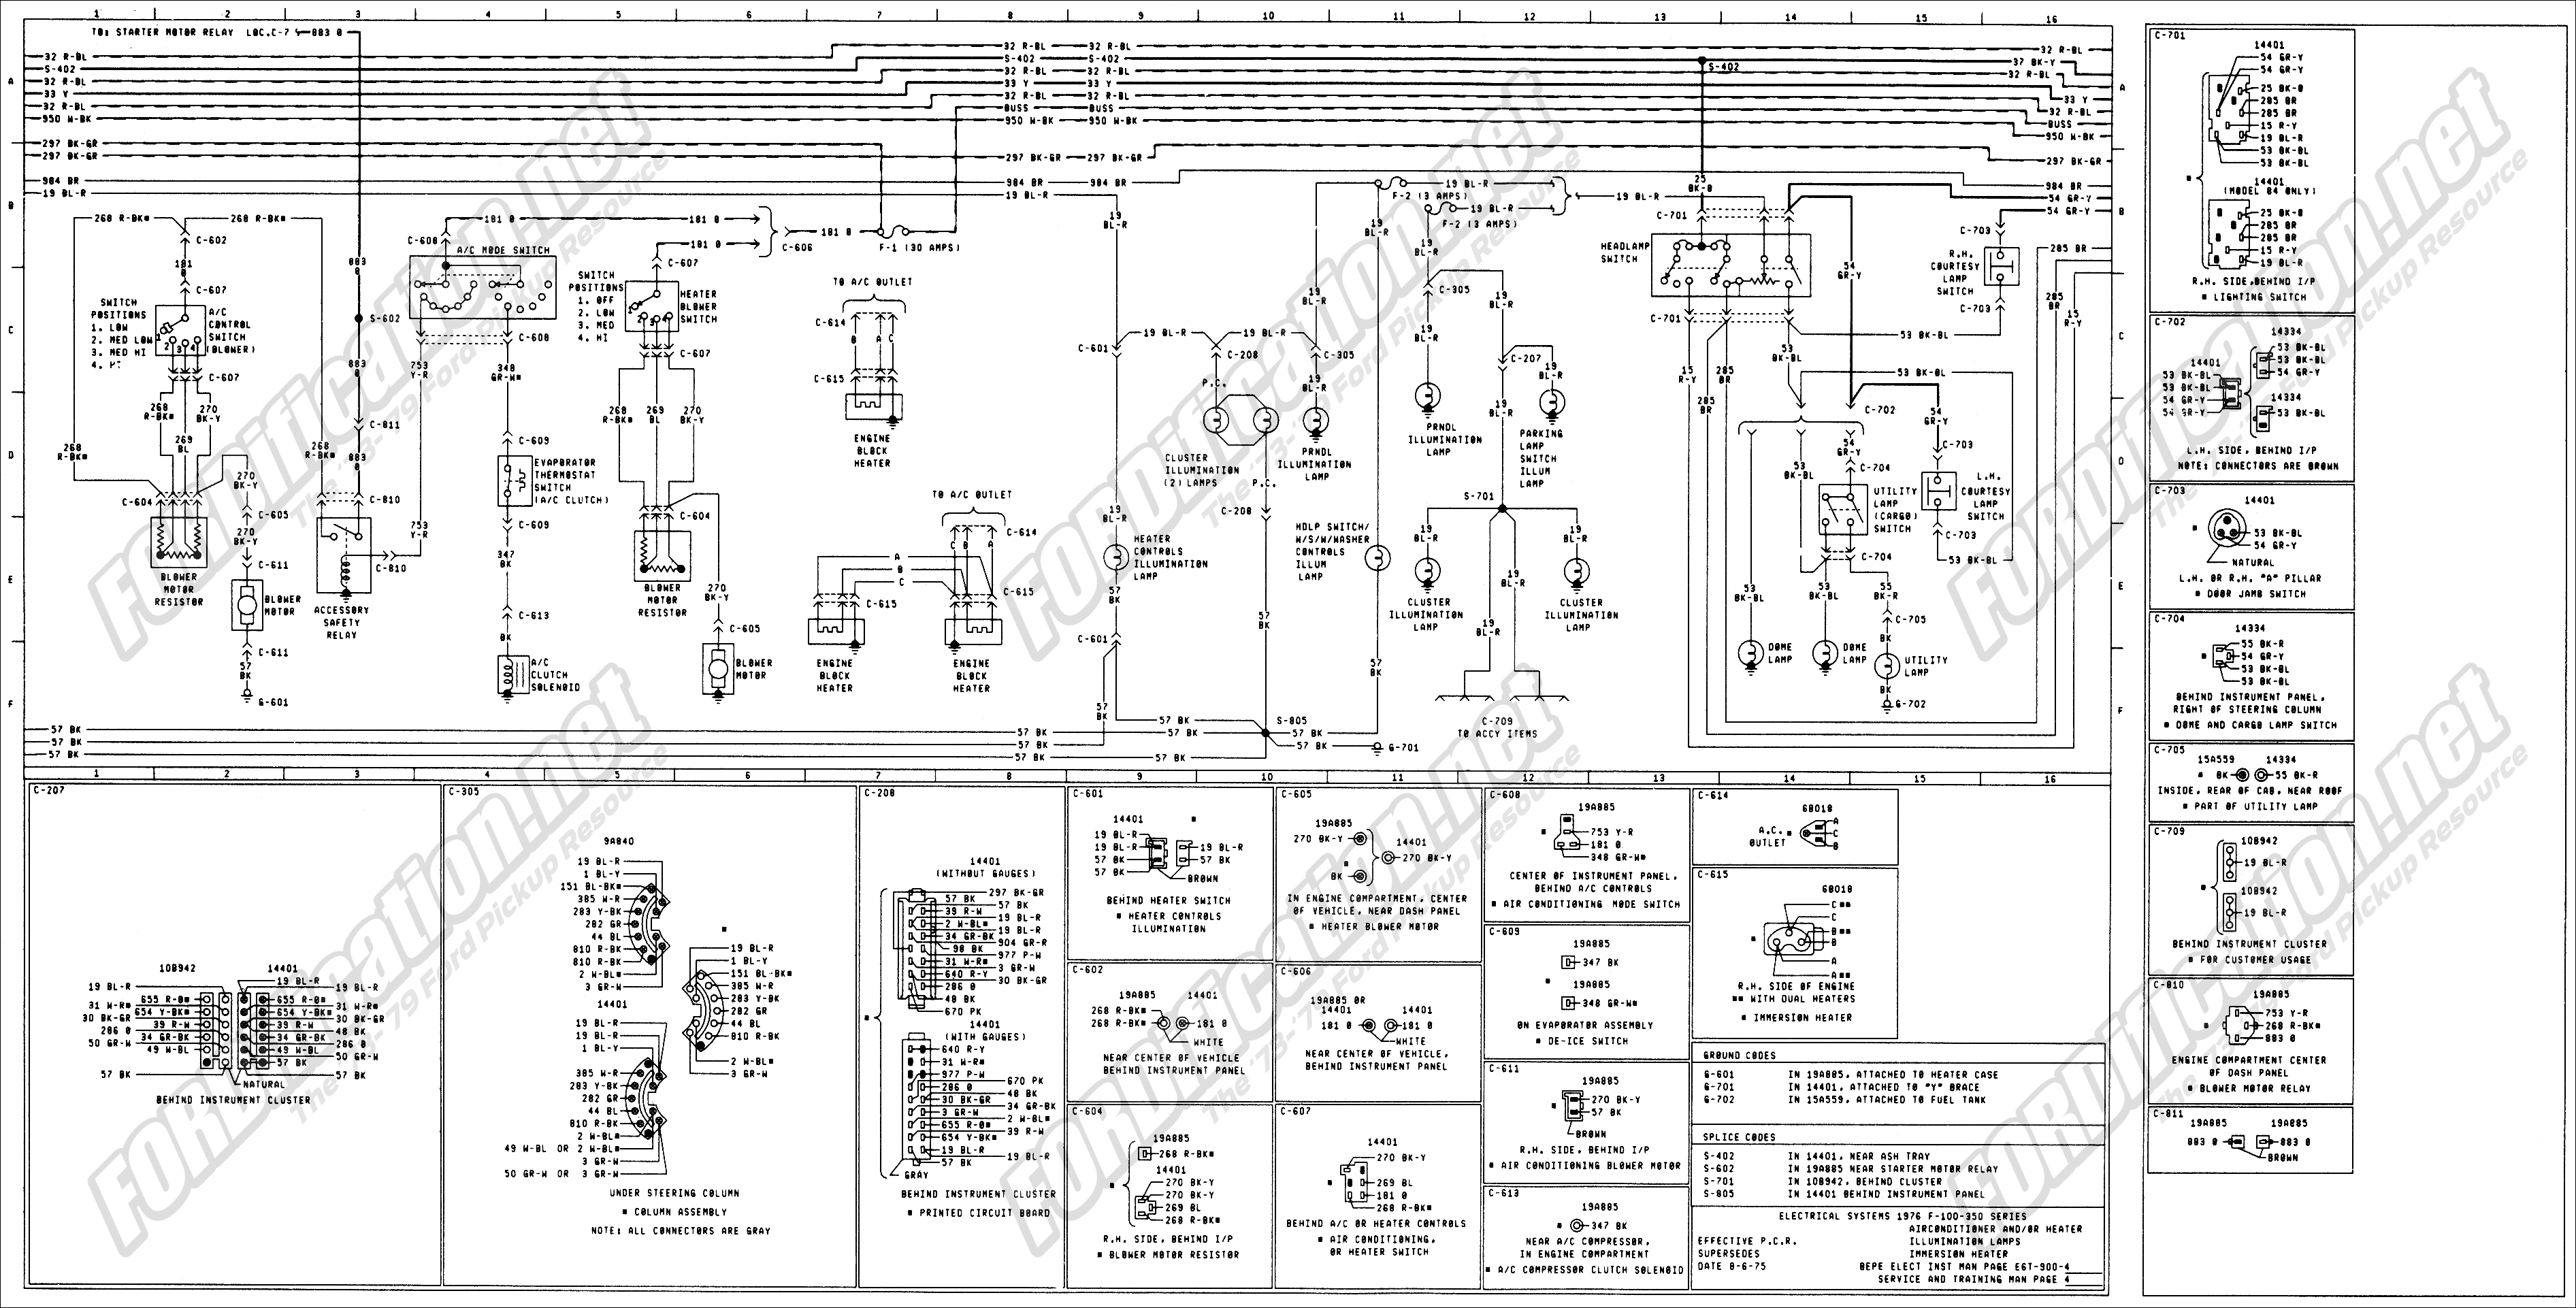 1977 Ford F 150 Brake Light Wiring Diagram Library 2000 250 Wire For Lights 1973 1979 Truck Diagrams Schematics Fordification Net F150 79